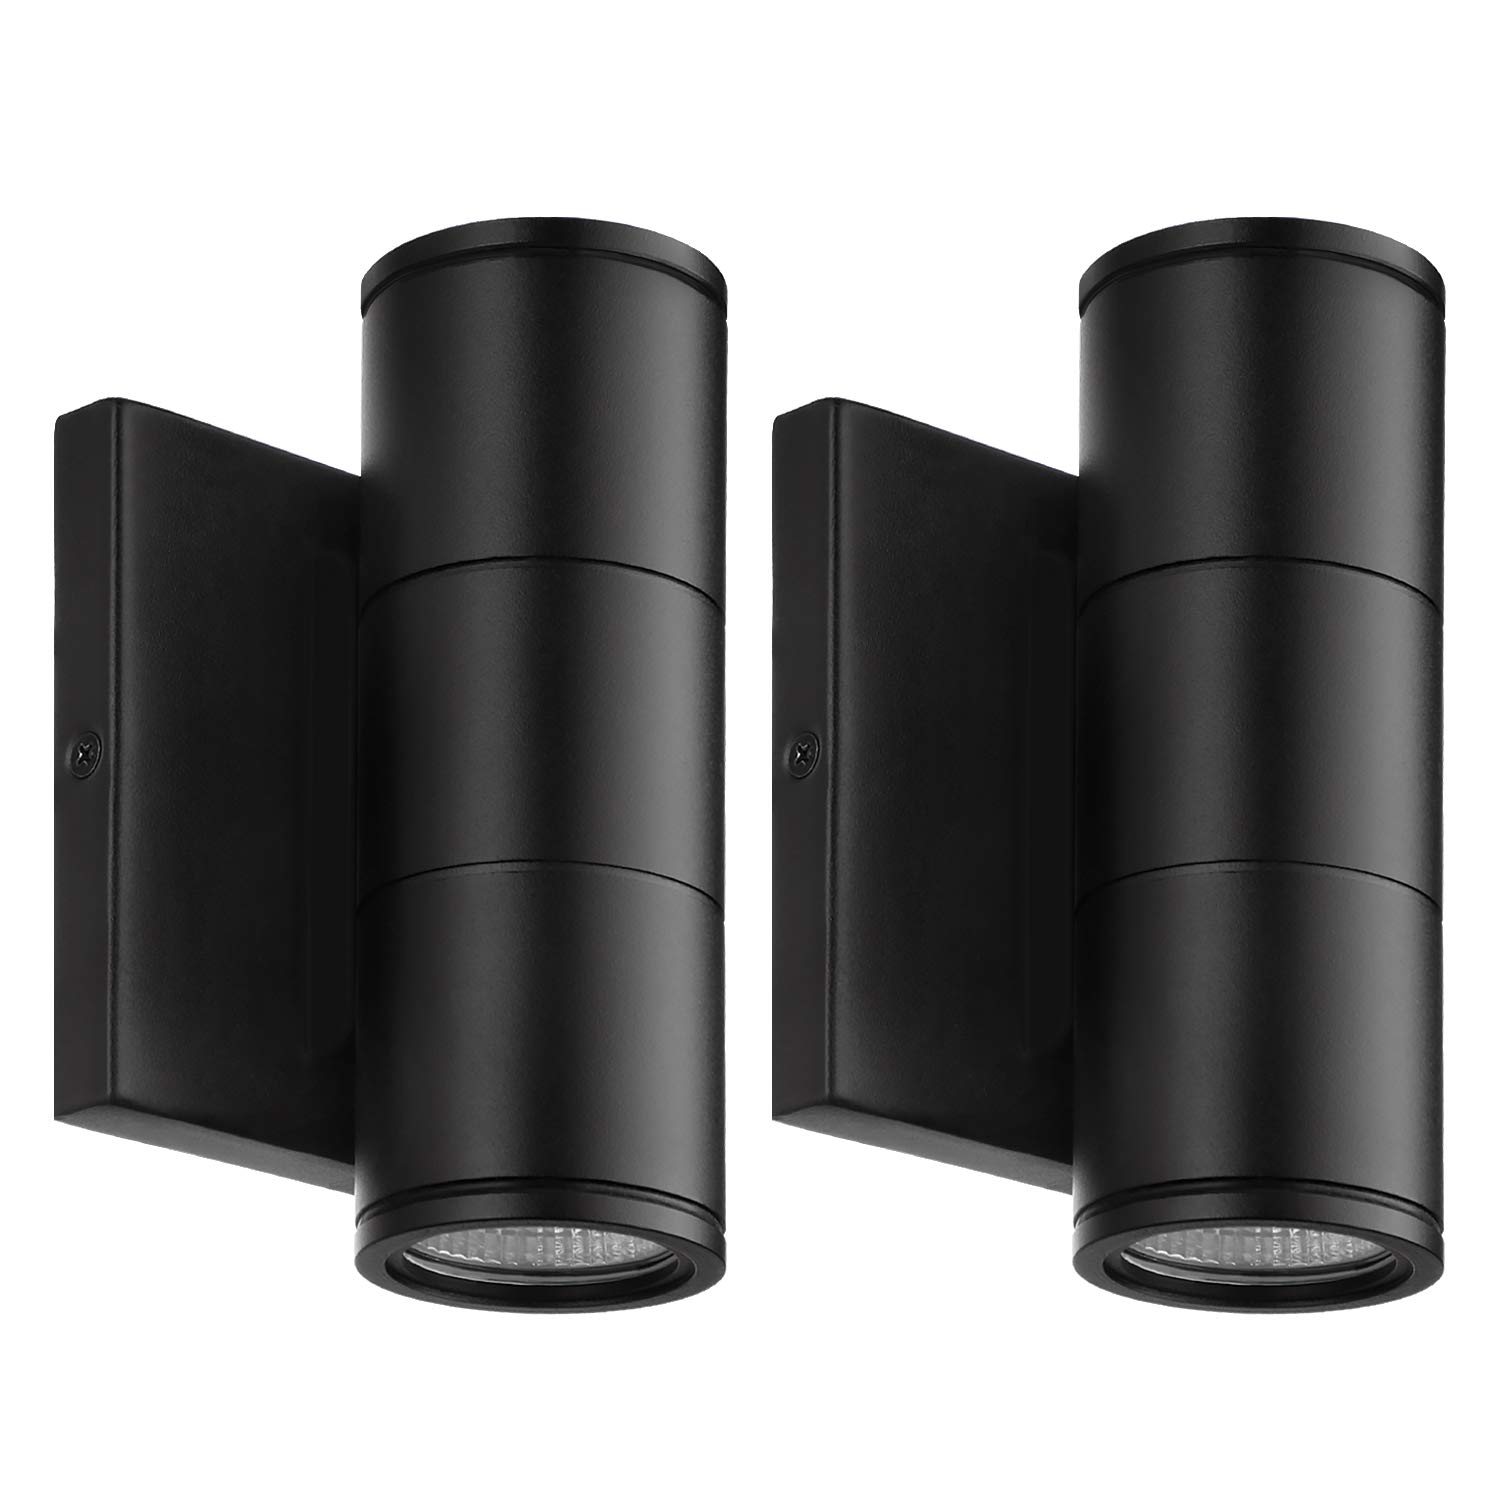 LEONLITE LED Cylinder Up Down Light, 10W (65W Equivalent), Super Bright LED Wall Mount Lamp, for Decoration on Door Way, Corridor, Garage, 5 Years Warranty, Pack of 2